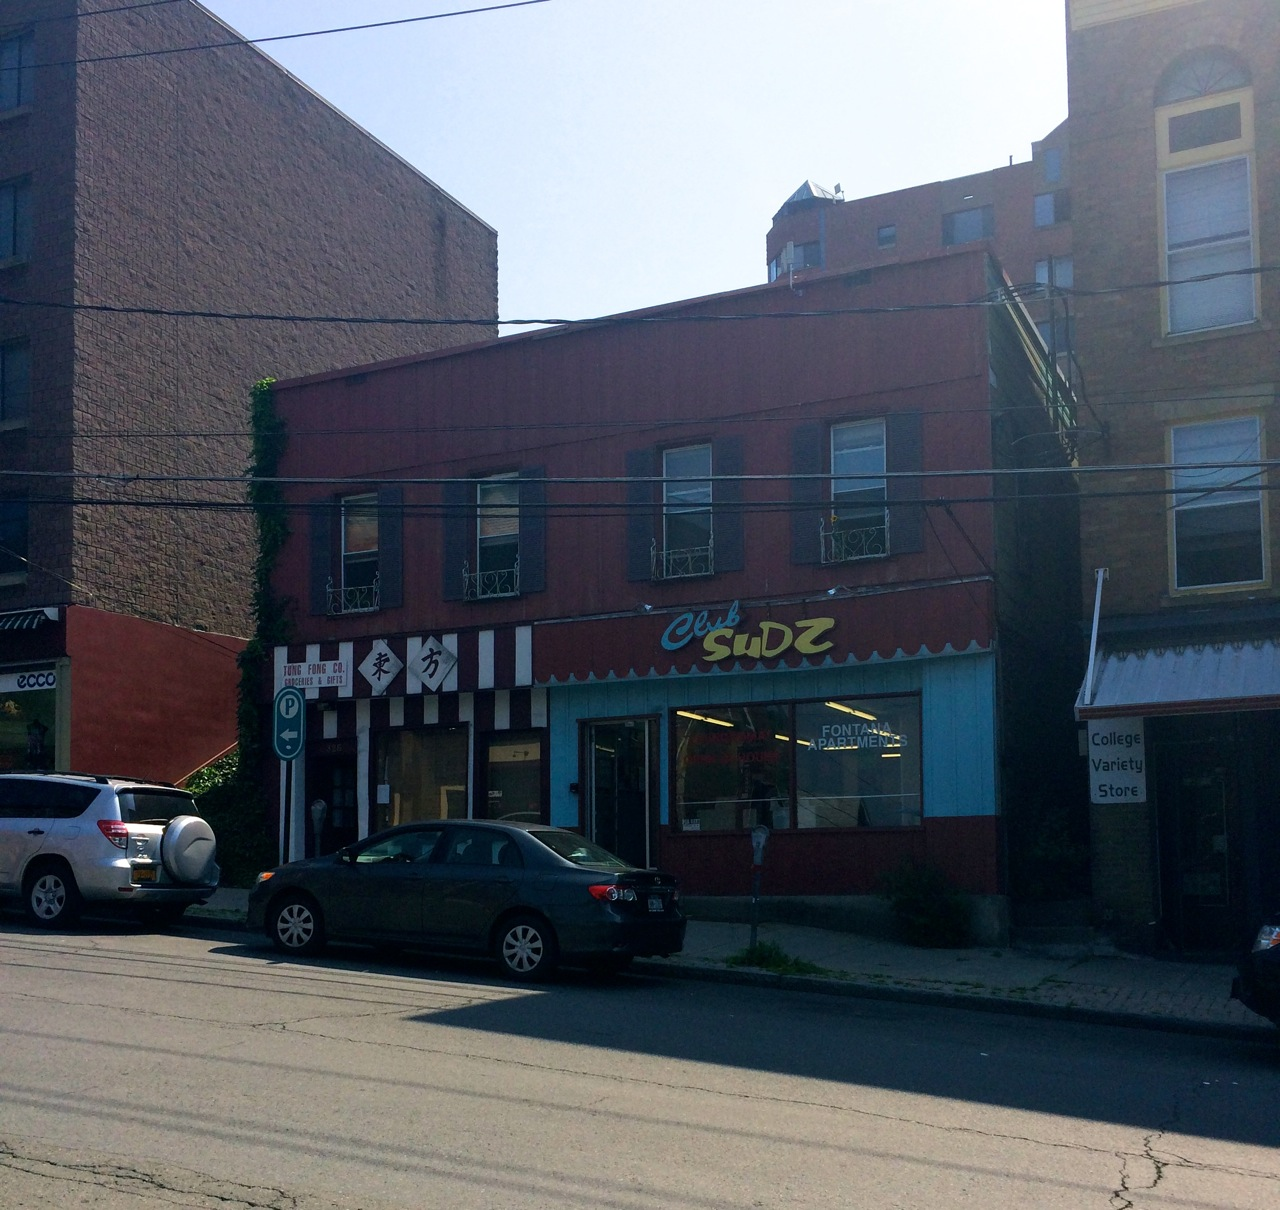 Fontana Apartments: Ithaca Builds « 327 Eddy Street Mixed-Use Building Proposal